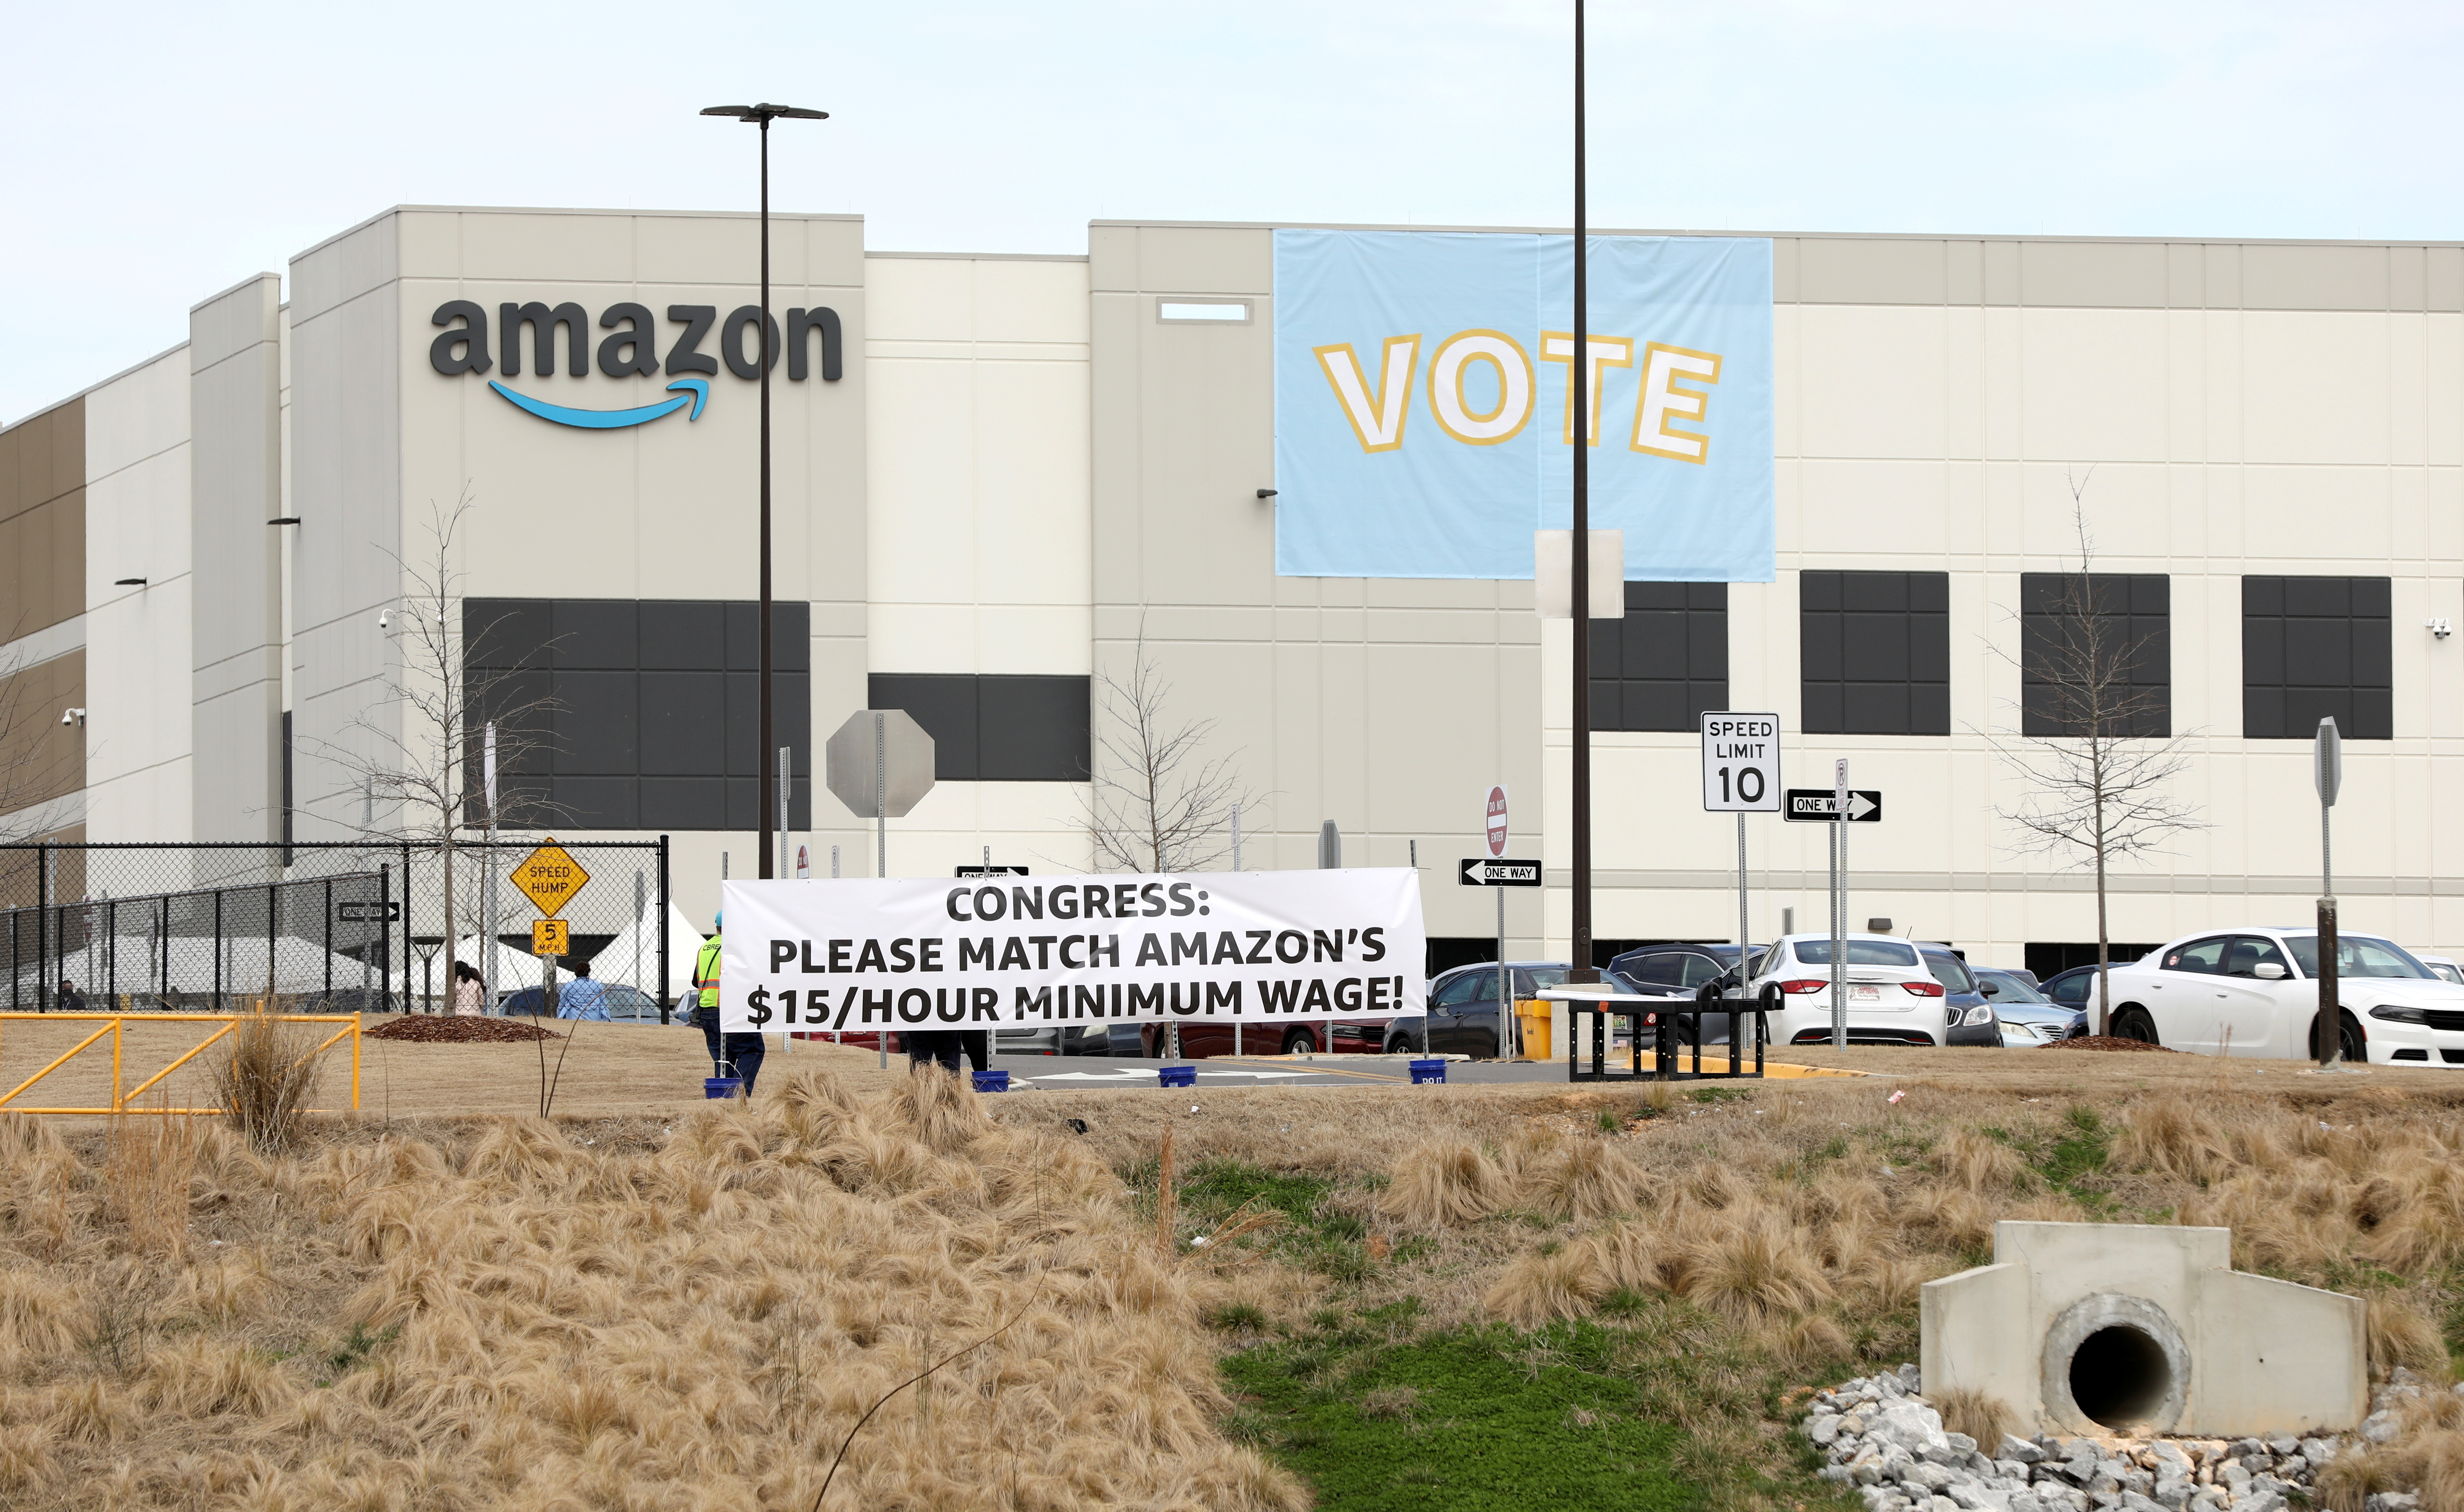 Banners are placed at the Amazon facility as members of a congressional delegation arrive to show their support for workers who will vote on whether to unionize, in Bessemer, Alabama, U.S. March 5, 2021.  REUTERS/Dustin Chambers/File Photo